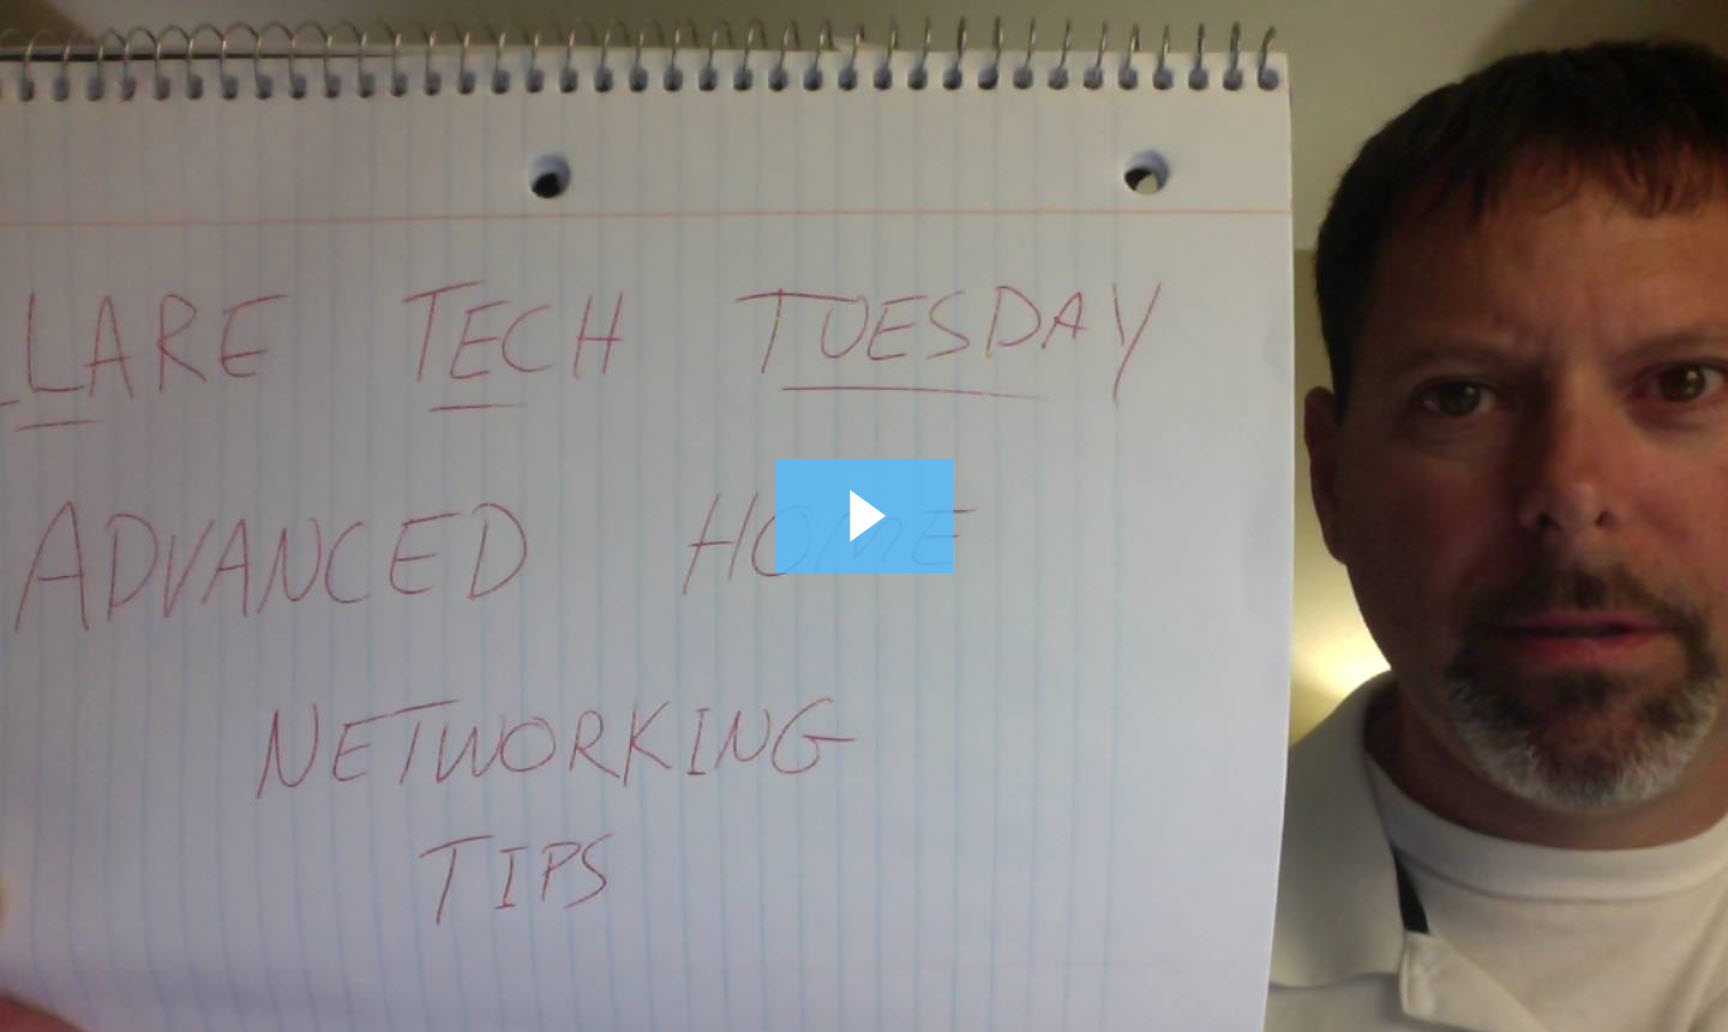 Clare Tech Wednesday: Advanced Home Networking Tips